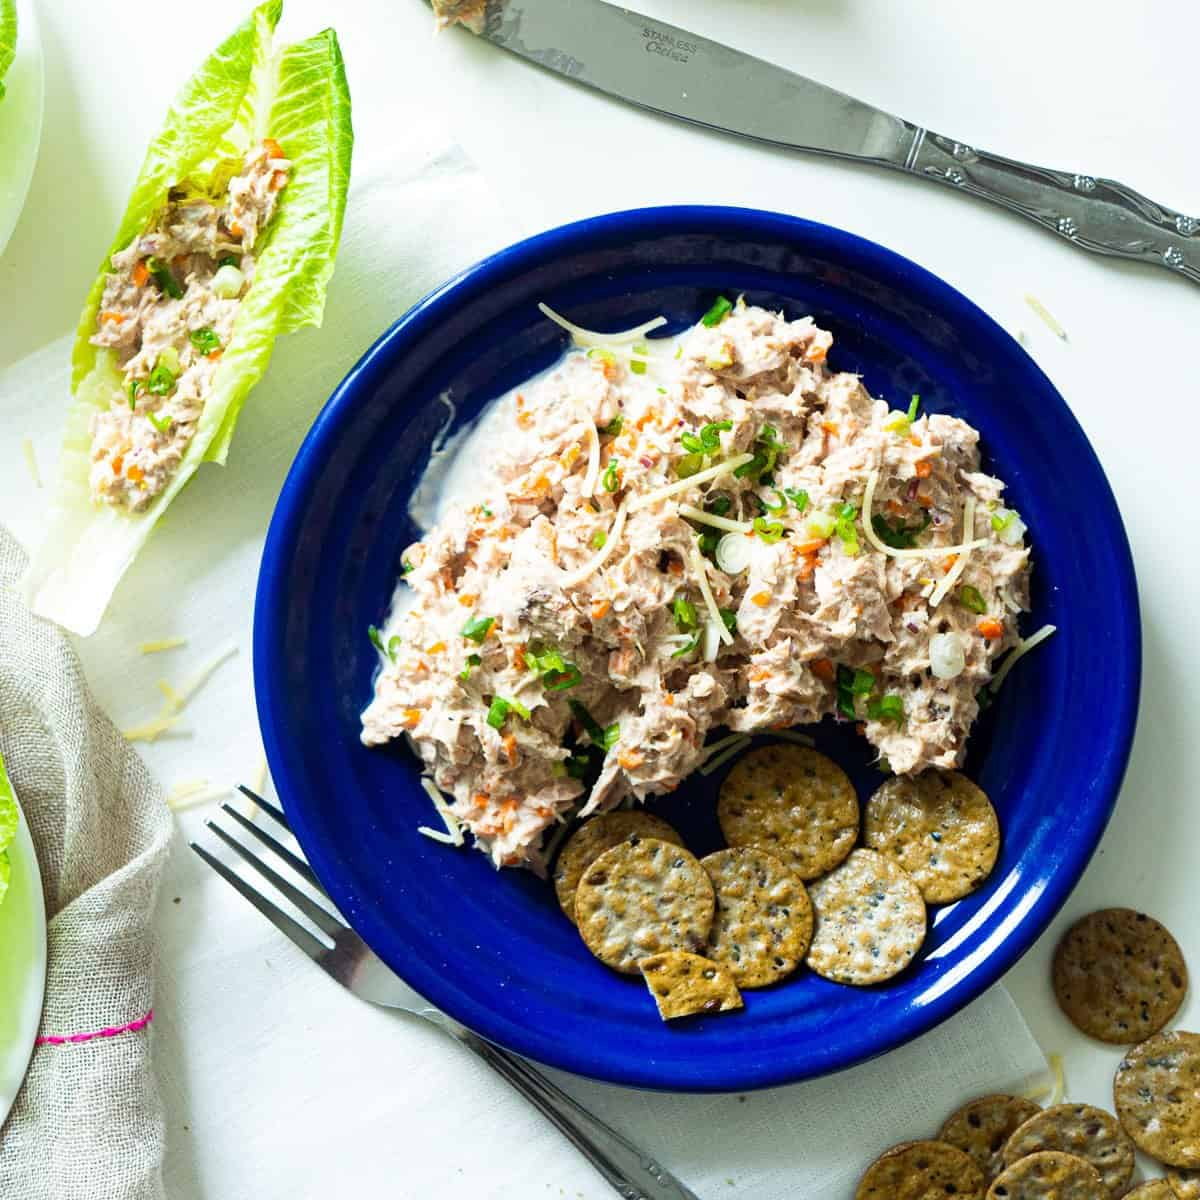 A plate of tuna salad next to lettuce cups with tuna salad inside